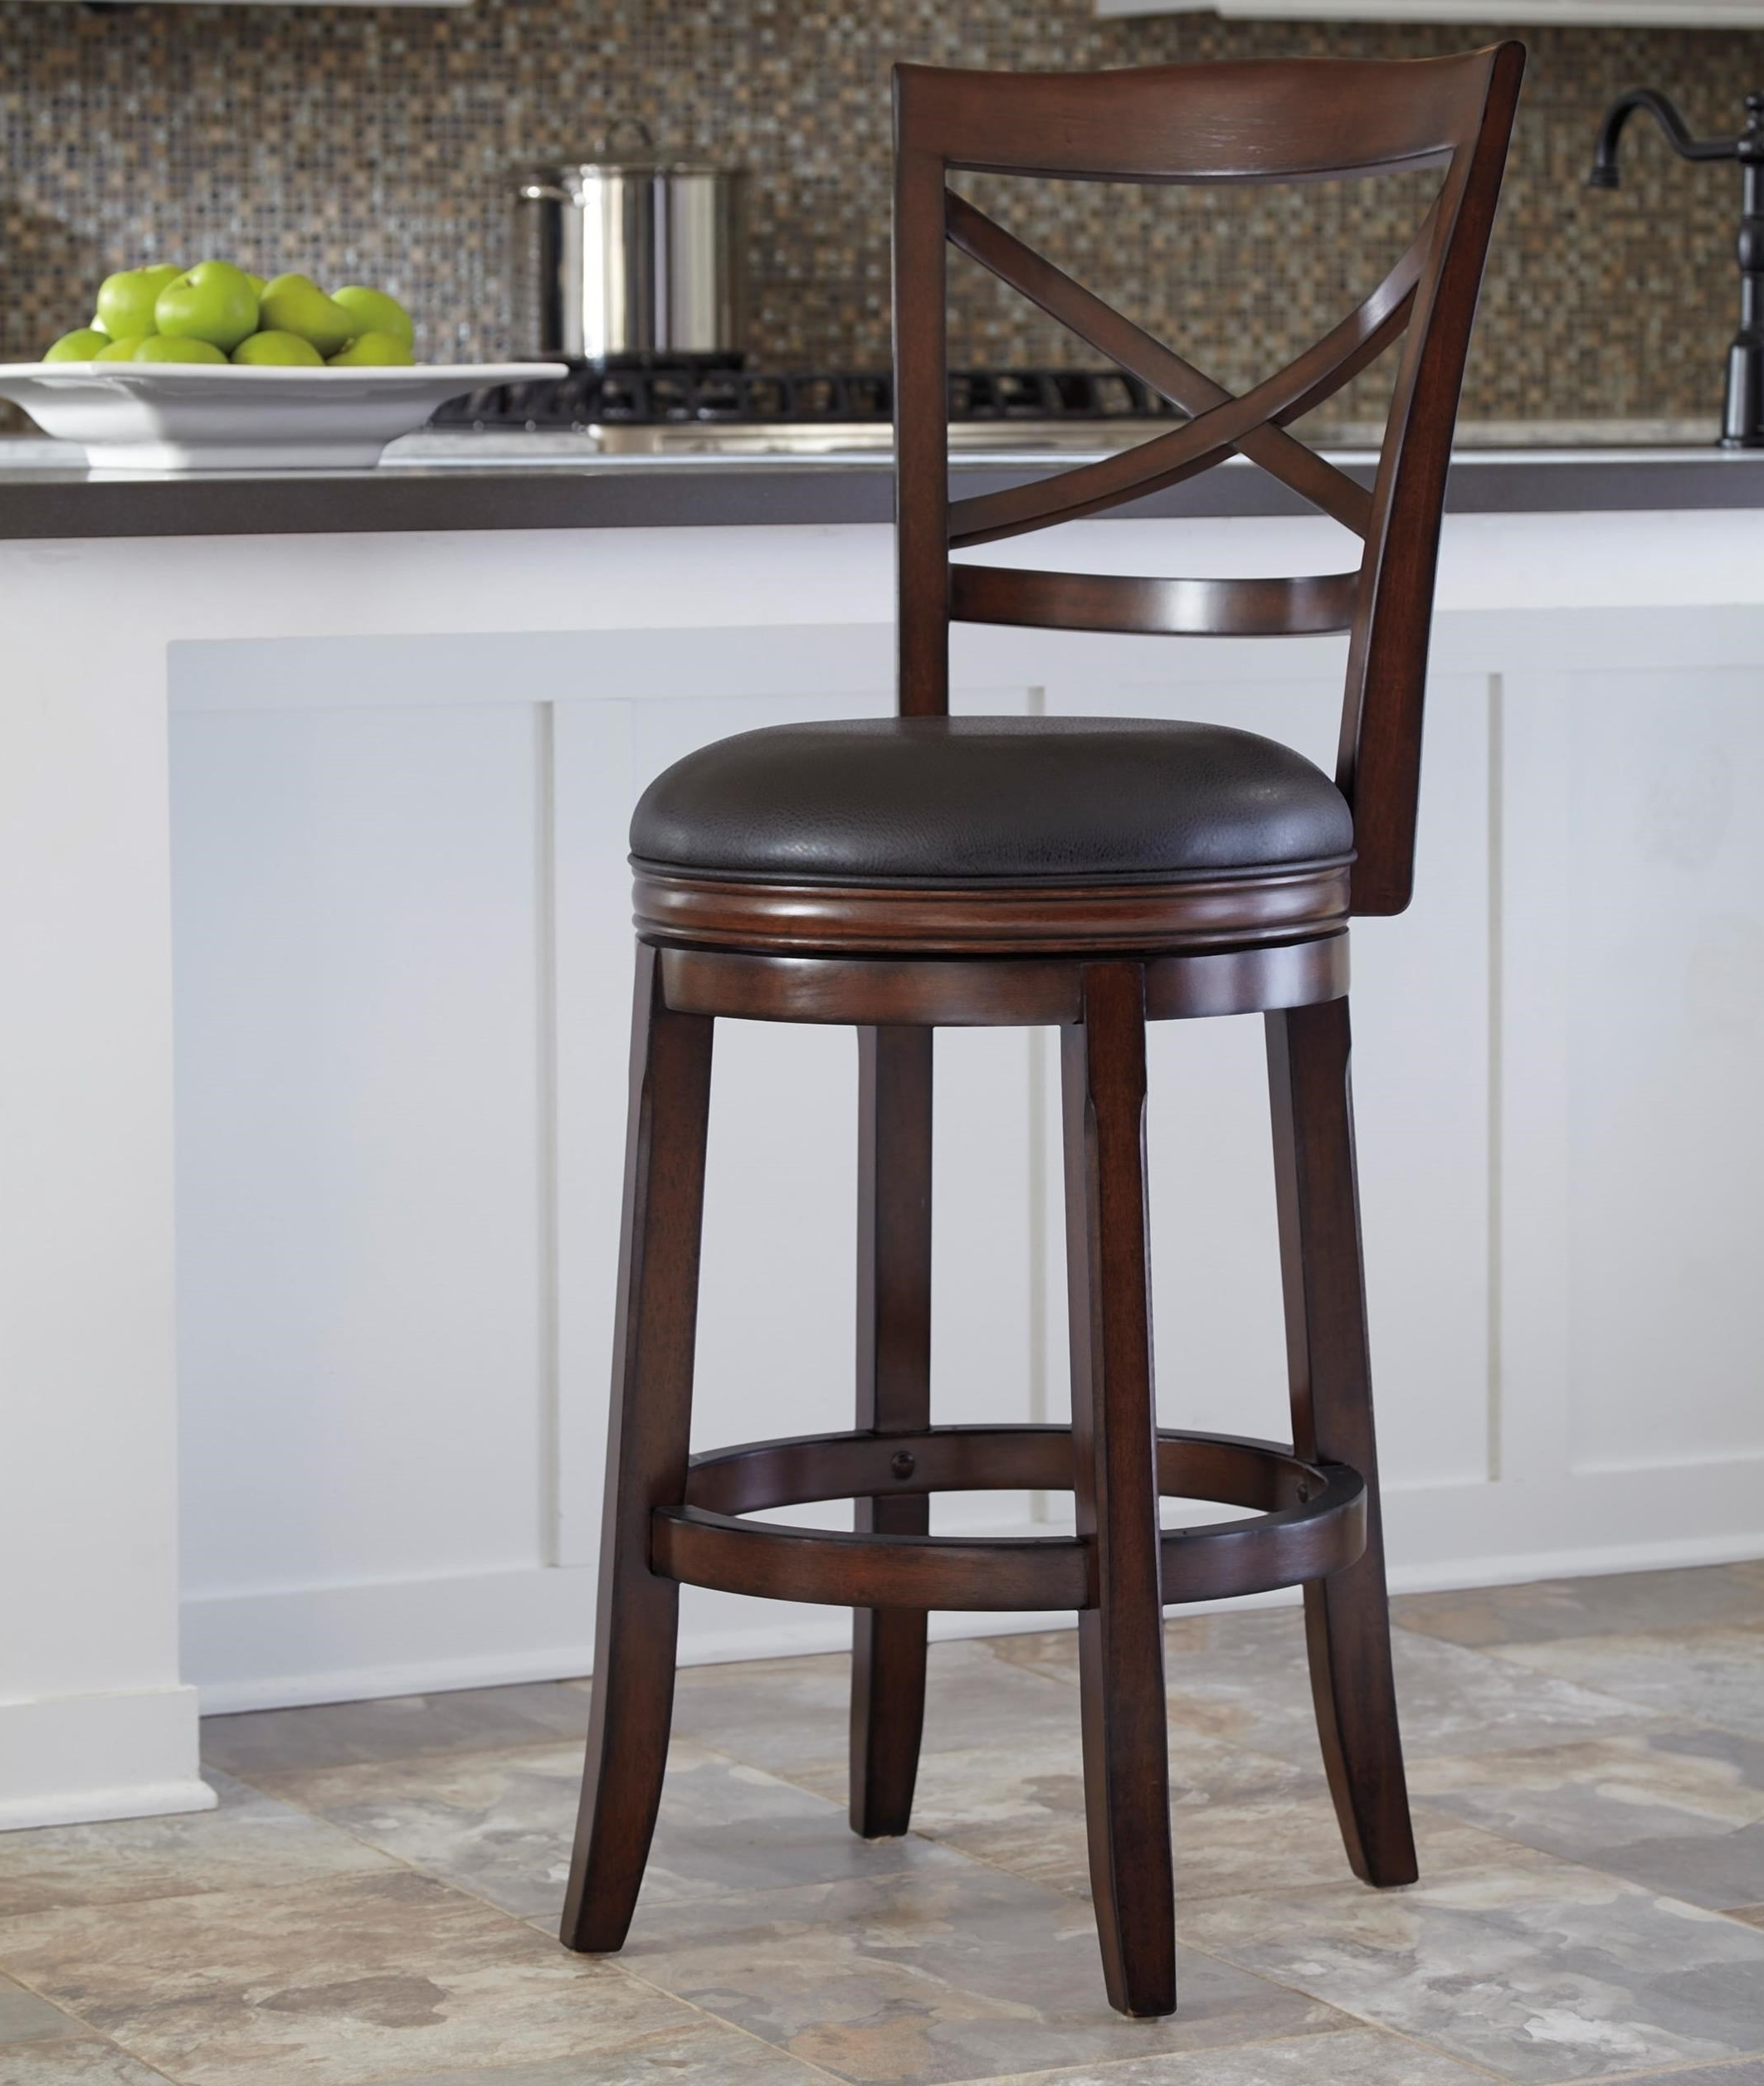 Fashionable Ashley Furniture Porter Bar Height X Back Tall Upholstered Swivel With Regard To Jaxon 5 Piece Extension Counter Sets With Wood Stools (View 12 of 25)